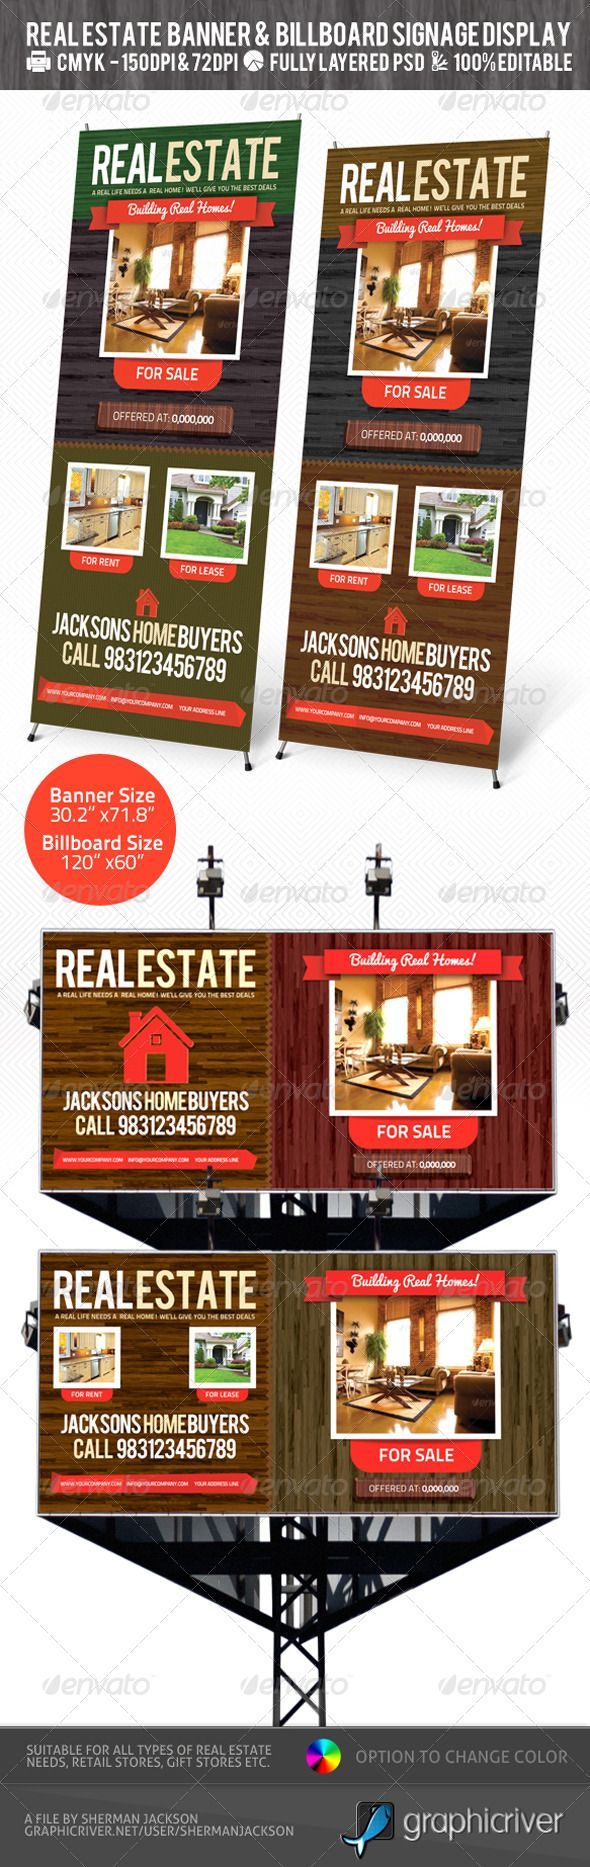 Real Estate Outdoor Banner & Billboard Signage PSD — Photoshop PSD #banner ads #houses • Available here → https://graphicriver.net/item/real-estate-outdoor-banner-billboard-signage-psd/2433054?ref=pxcr